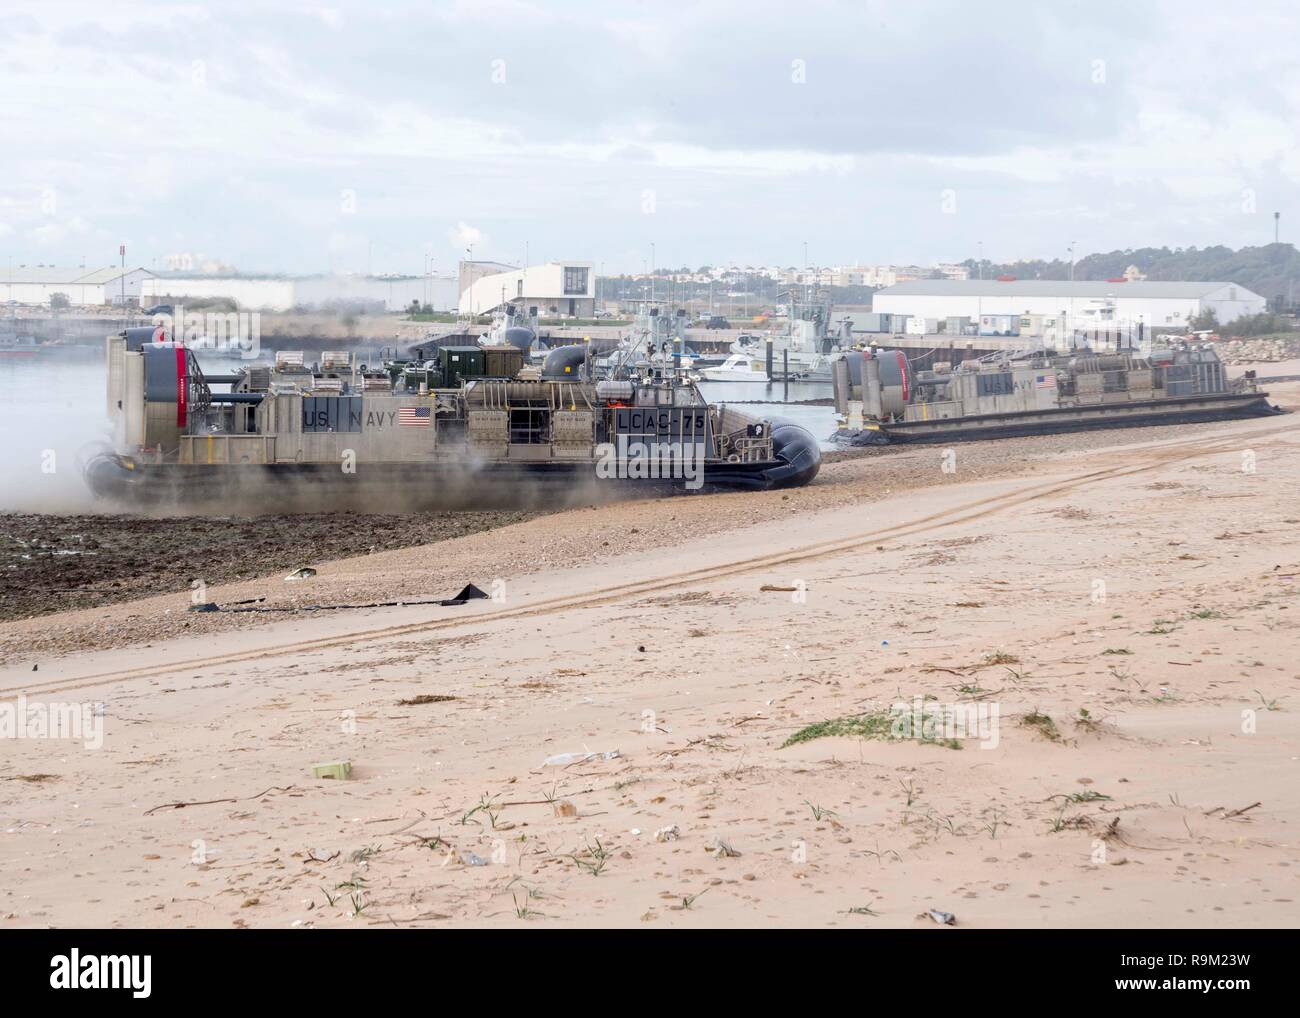 181124-N-PH222-1520 ROTA, SPAIN (Nov. 24, 2018) Landing craft, air cushions (LCAC) assigned to Assault Craft Unit 5, embarked on the San Antonio-class amphibious transport dock ship USS Anchorage (LPD 23), land on a beach in Rota, Spain, Nov. 24, 2018. Anchorage and embarked 13th Marine Expeditionary Unit are deployed to the U.S. 6th Fleet area of operations as a crisis response force in support of regional partners as well as to promote U.S. national security interests in Europe and Africa. (U.S. Navy photo by Mass Communication Specialist 3rd Class Ryan M. Breeden/Released) - Stock Image